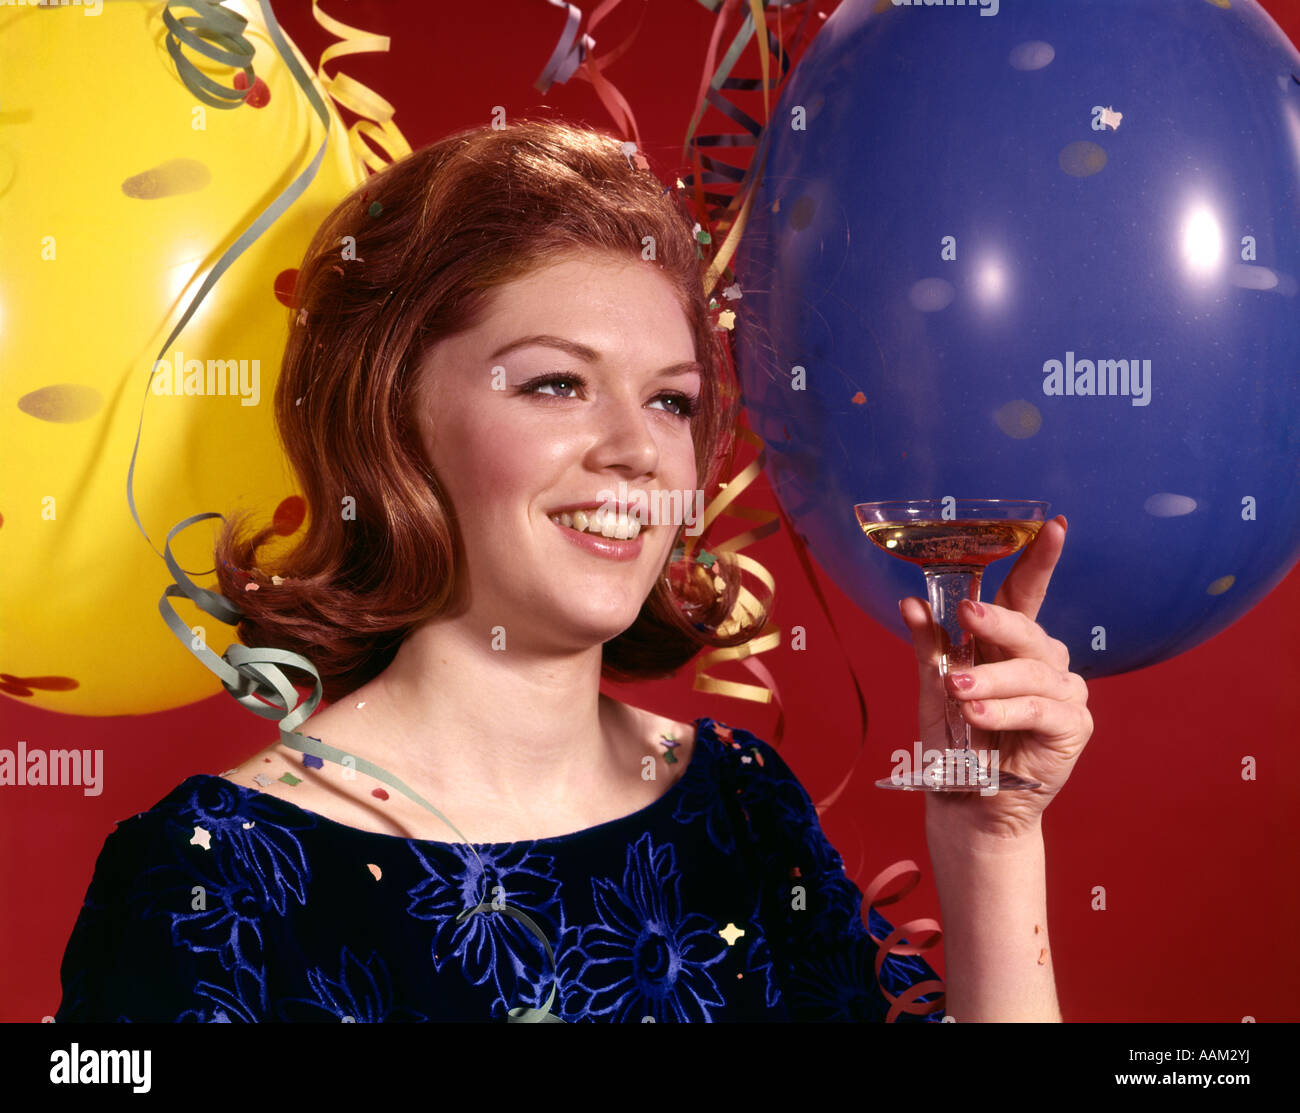 1960s YOUNG WOMAN SMILING TOASTING TOAST GLASS CHAMPAGNE BALLOONS STREAMERS BACKGROUND PARTY NEW YEARS - Stock Image